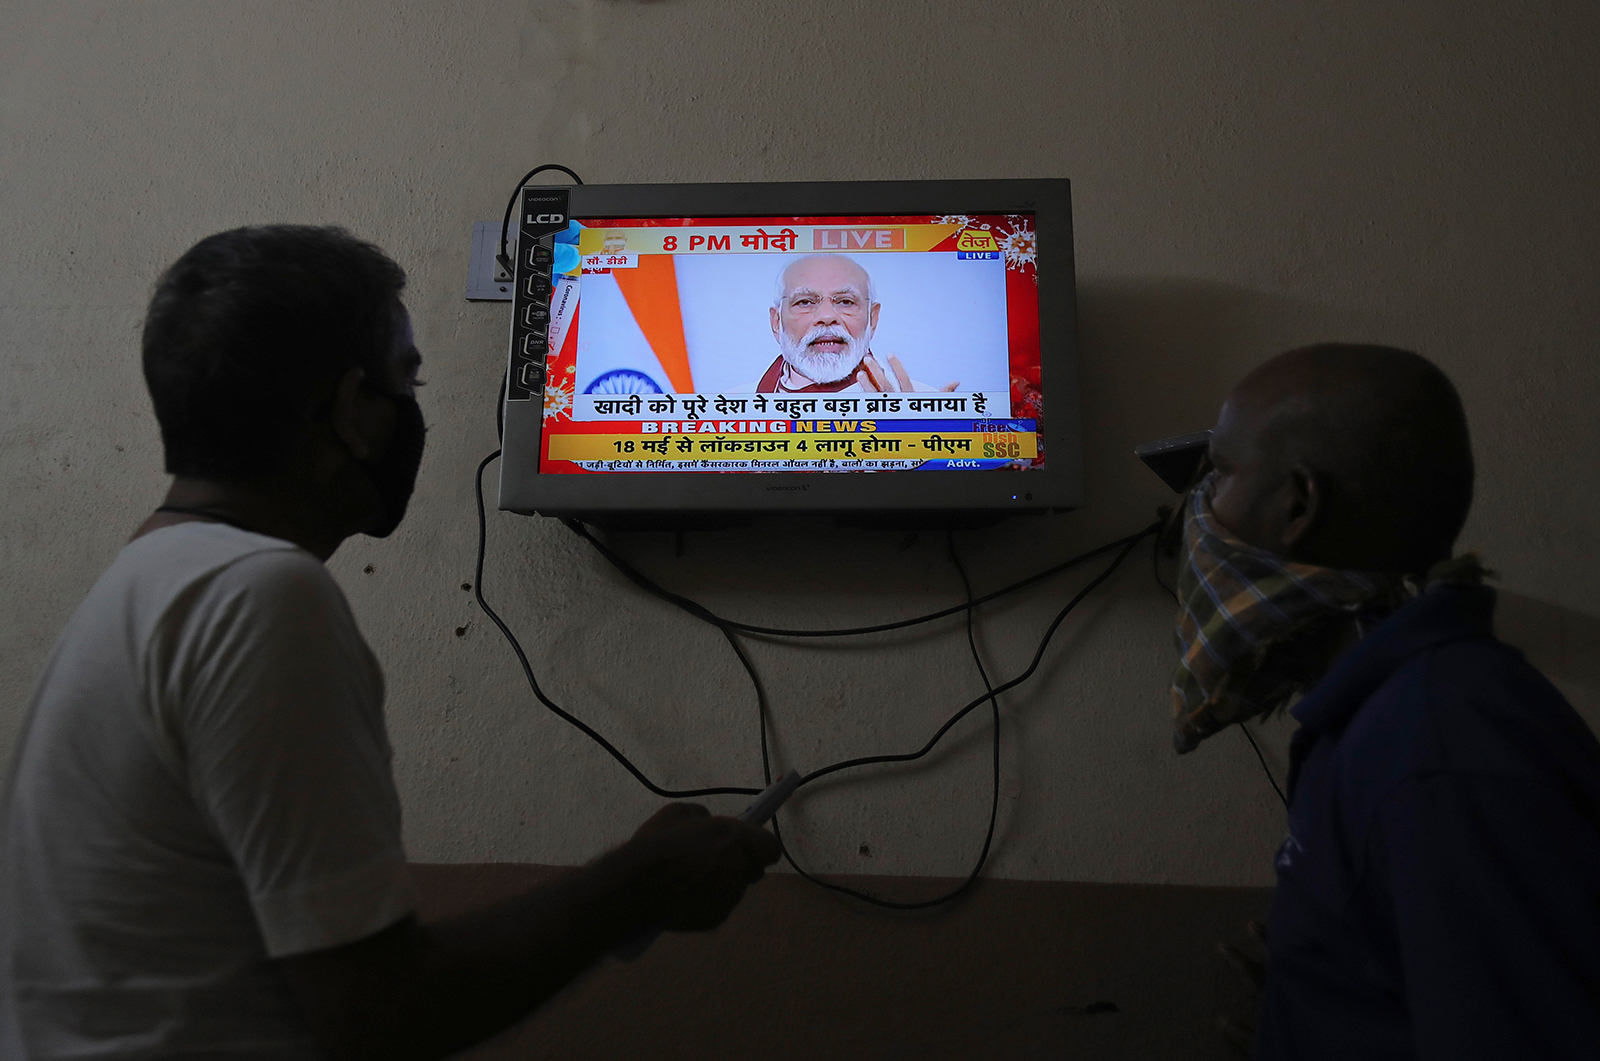 Viewers in India watch a televised address to the nation by Prime Minister Narendra Modi in Hyderabad, India, on Tuesday, May 12.